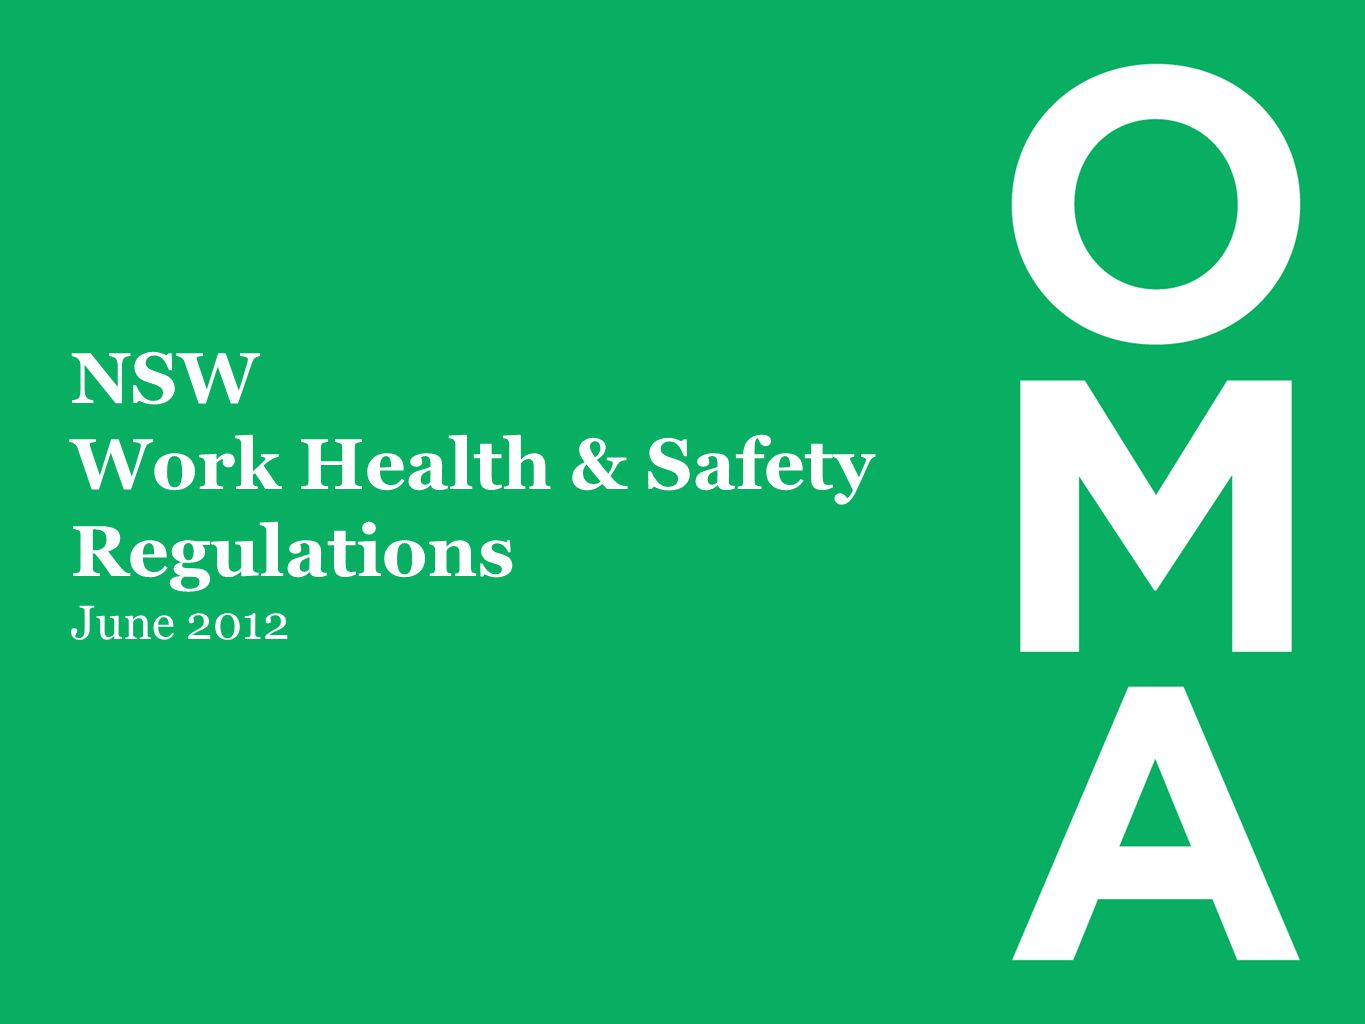 NSW Work Health & Safety Regulations June 2012